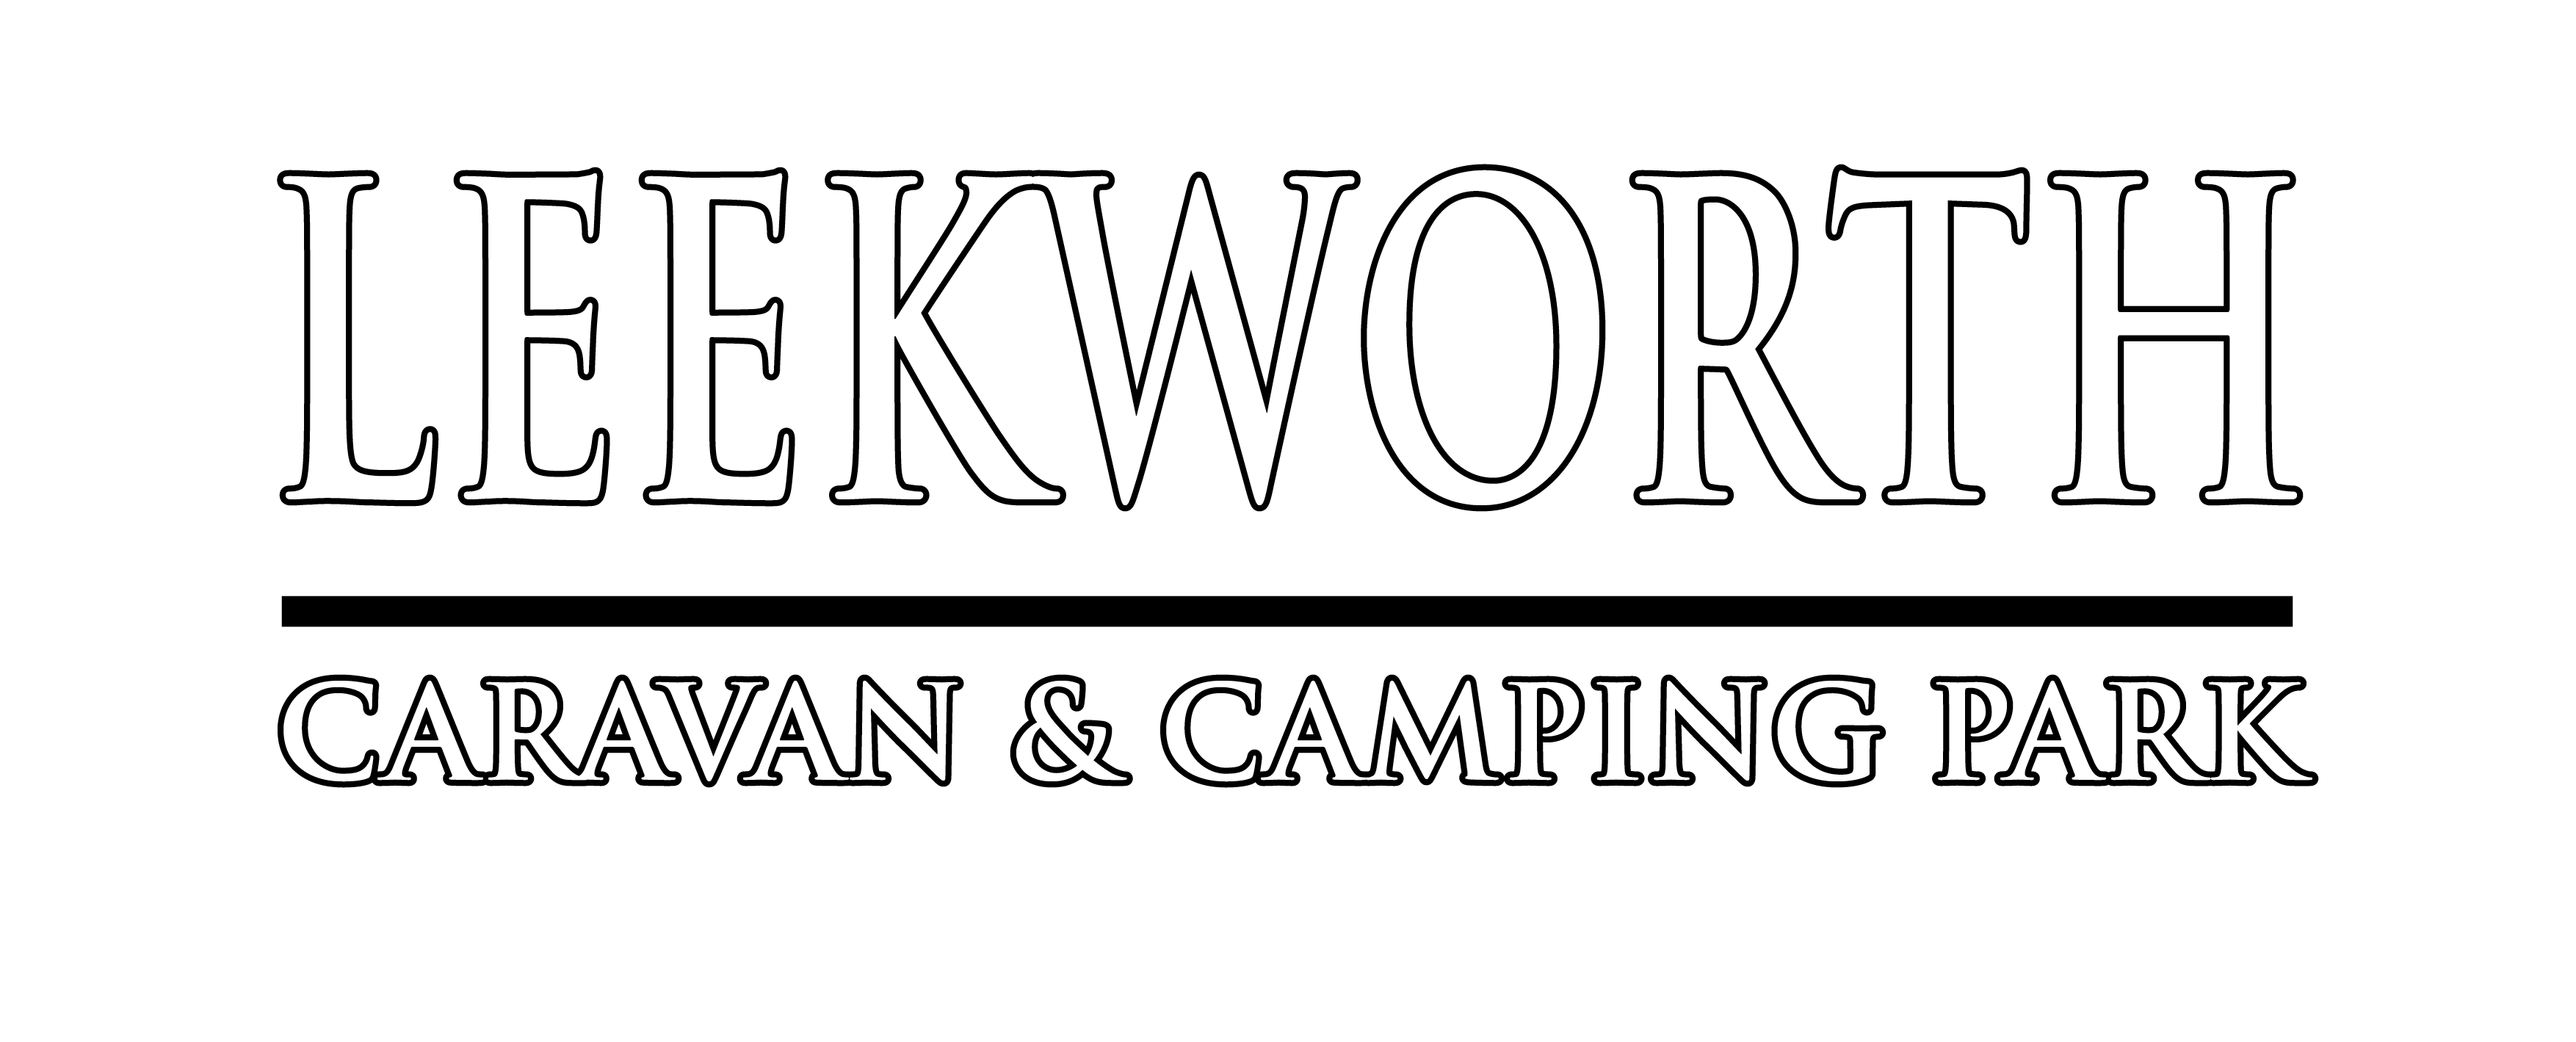 leekworth caravan and camping park | caravan park durham dales teesdale, camp site teesdale | caravan park barnard castle | camping site barnard castle